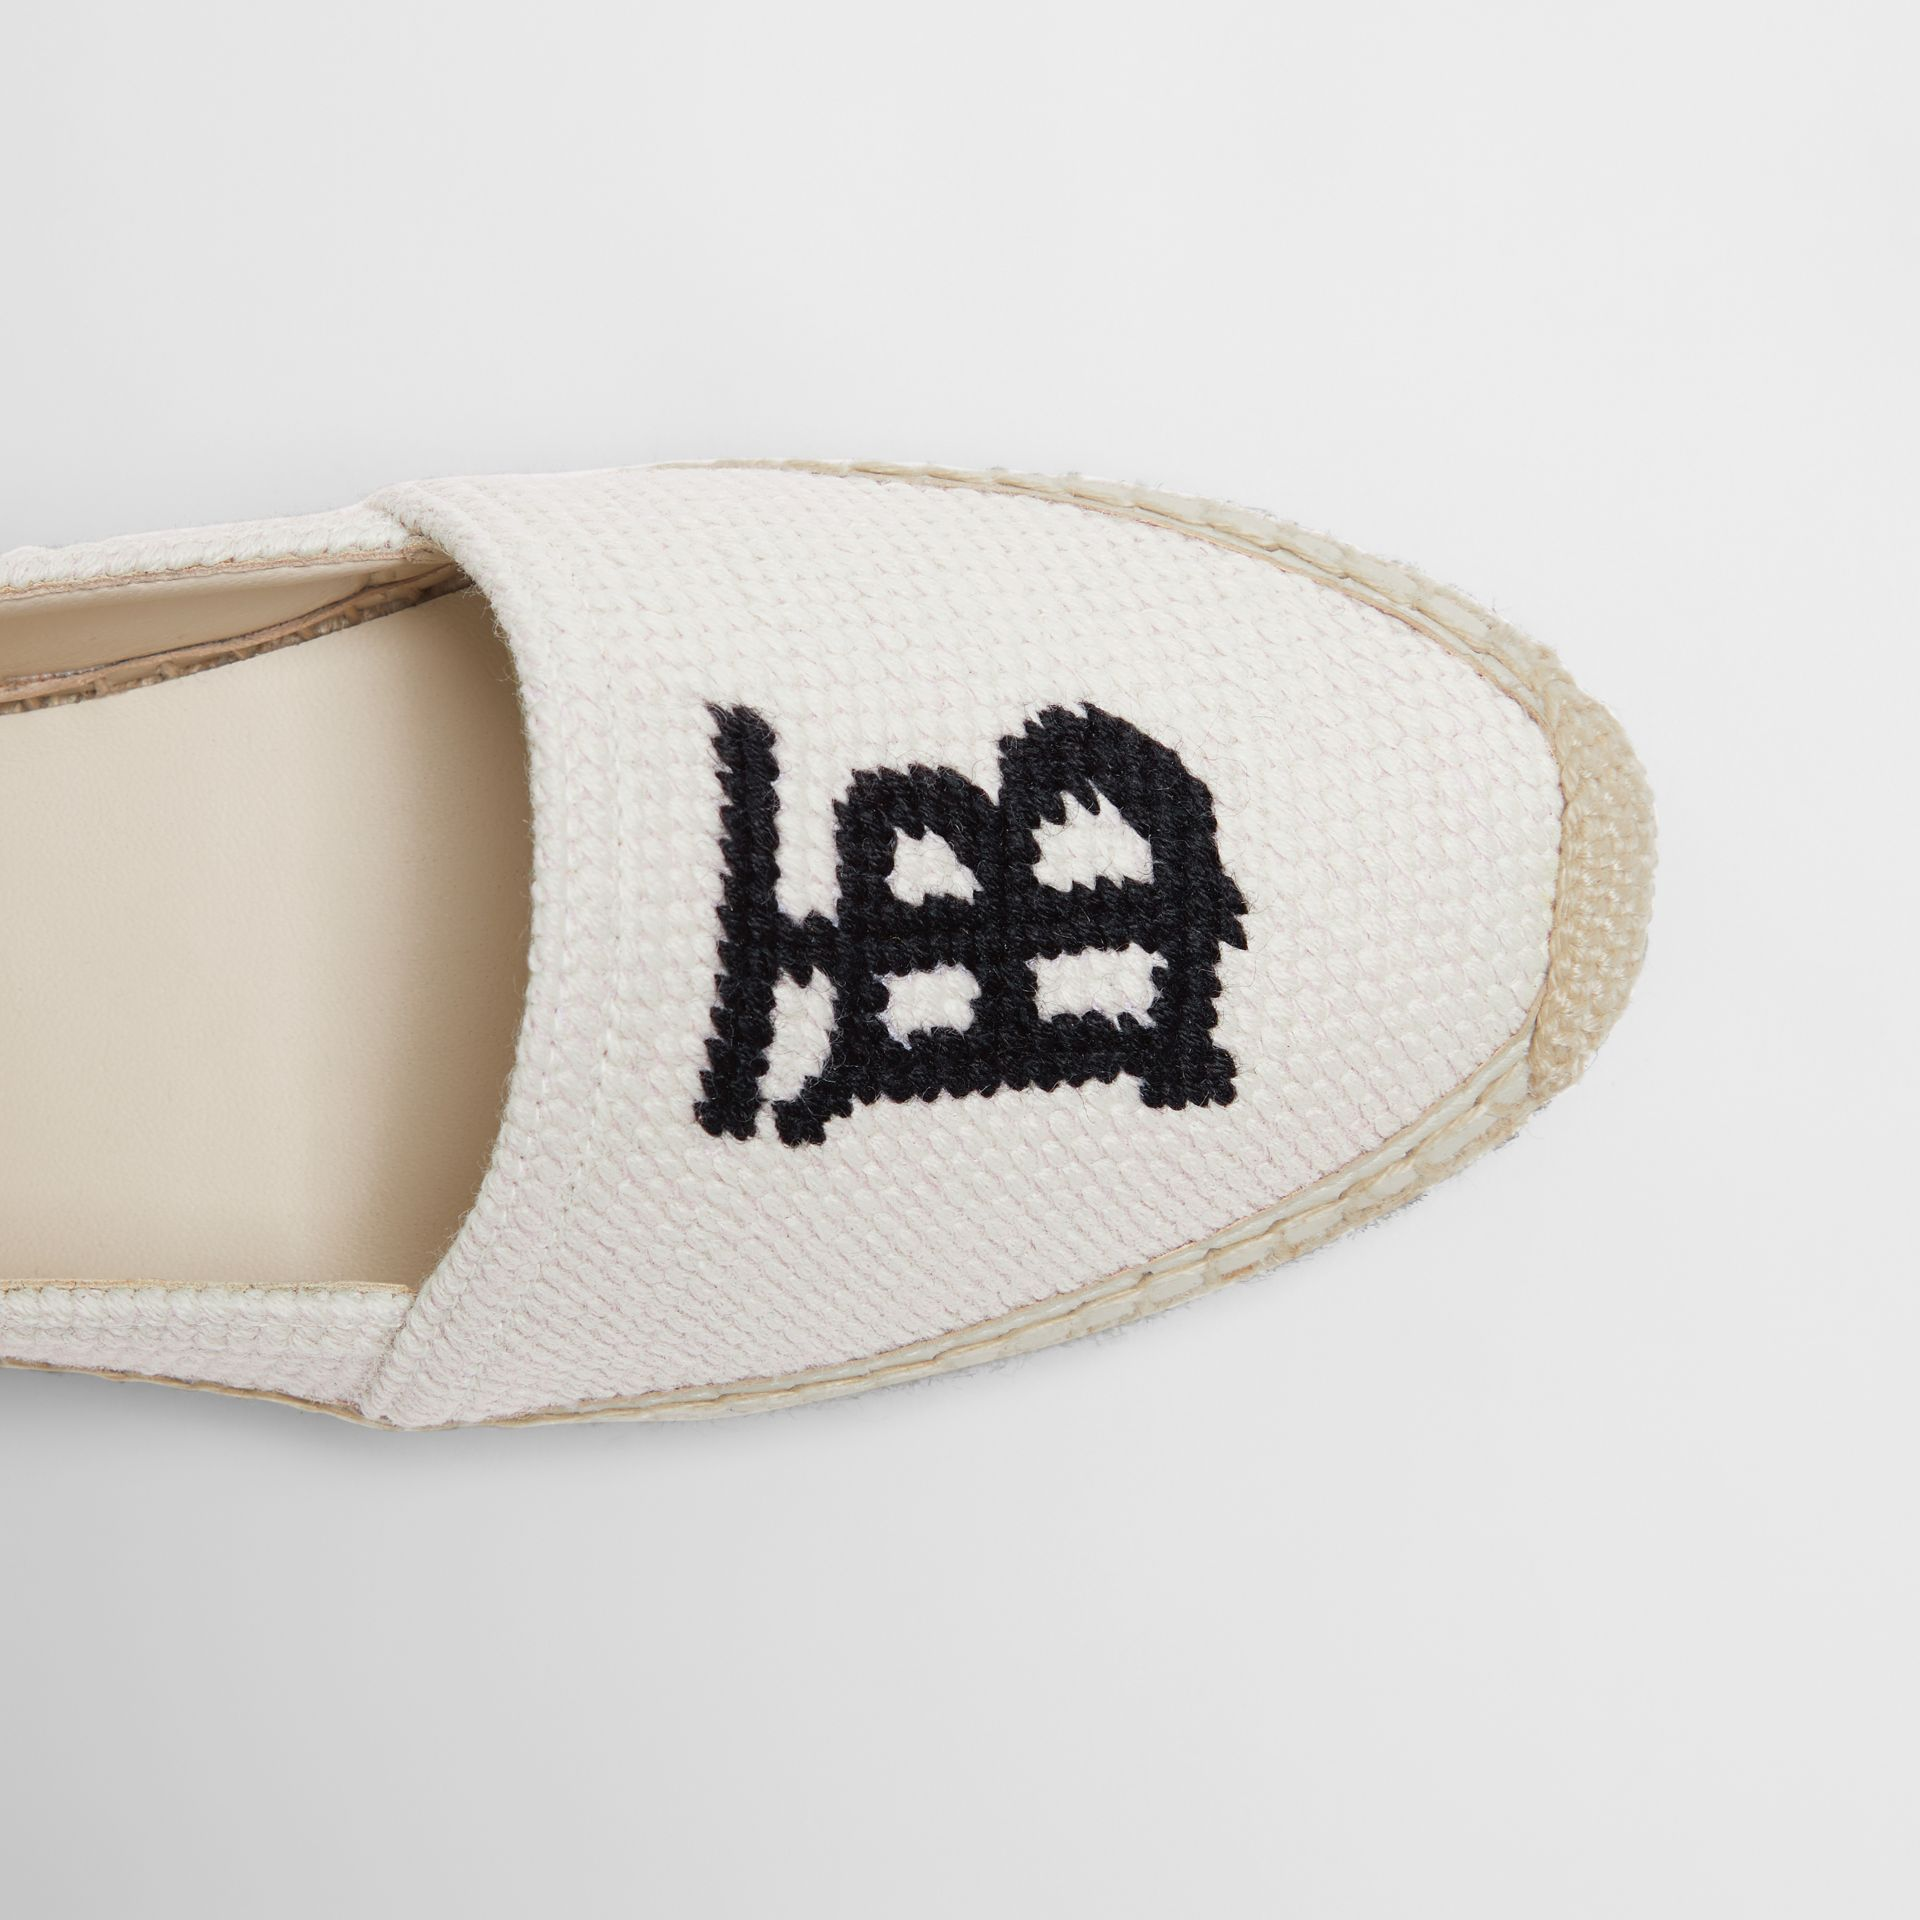 Monogram Motif Cotton and Leather Espadrilles in Ecru/black - Women | Burberry United Kingdom - gallery image 1